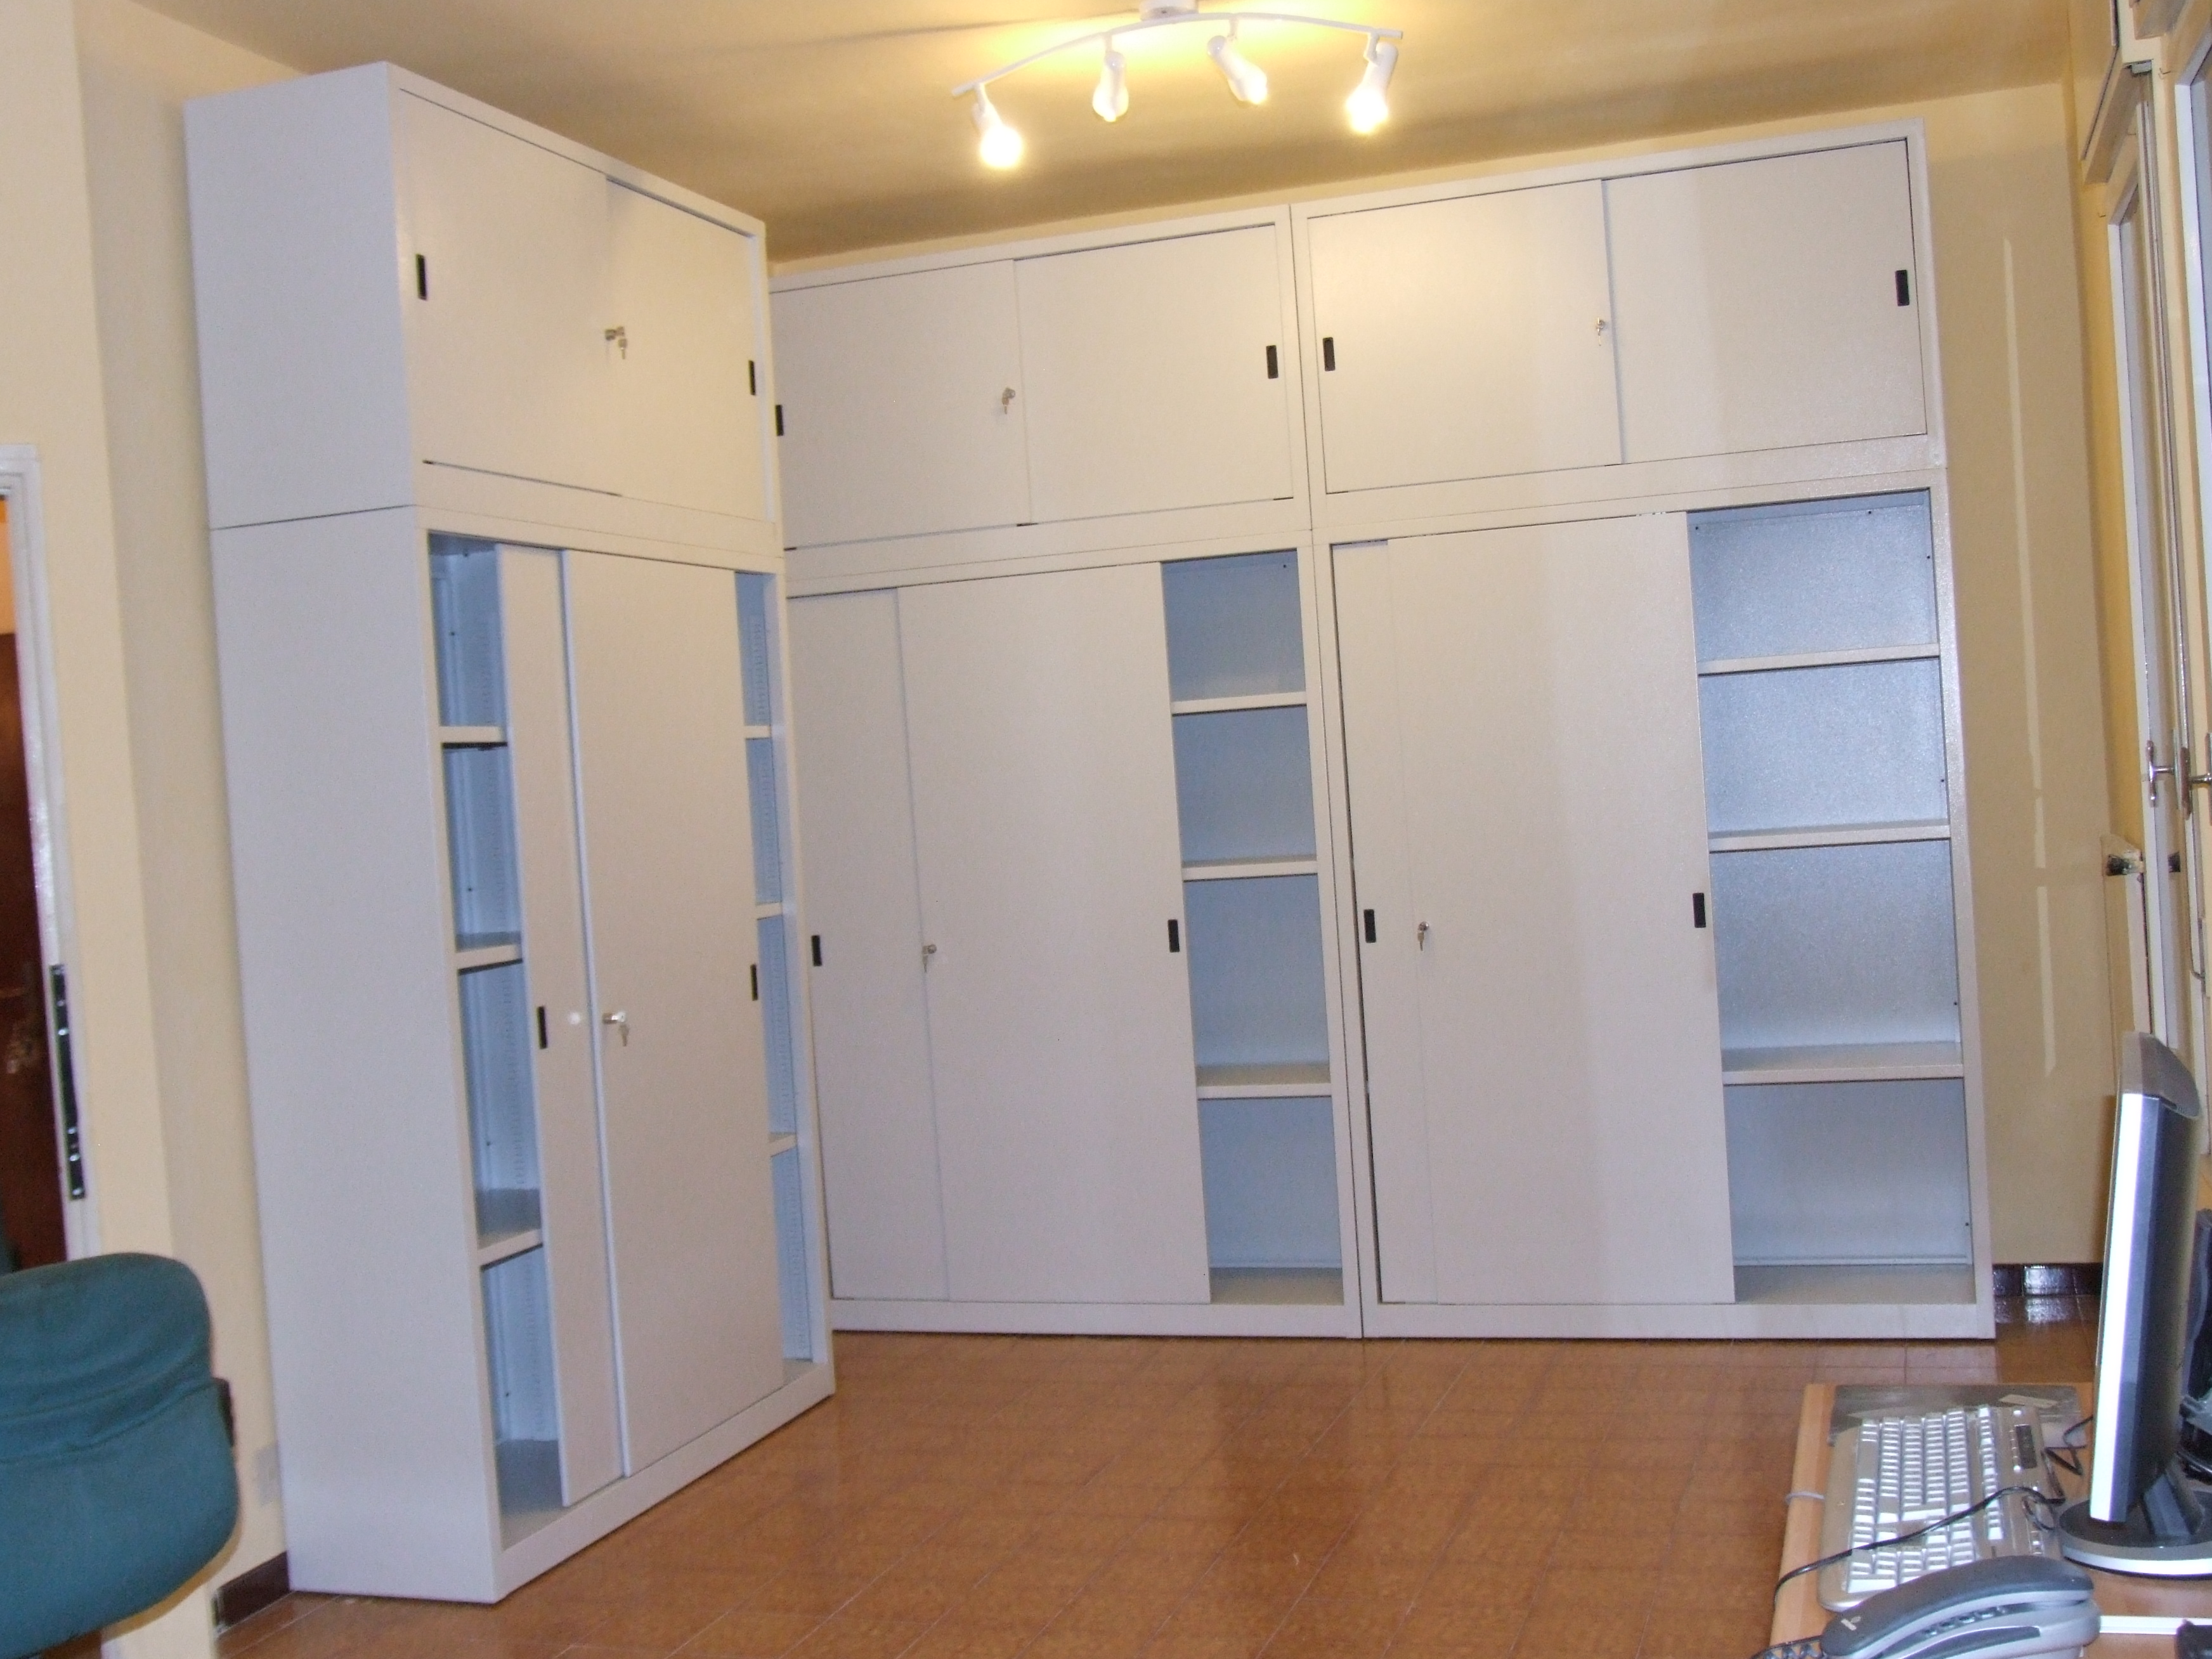 Votivo Sacred Furnishings: Customized cupboard for parish archives.